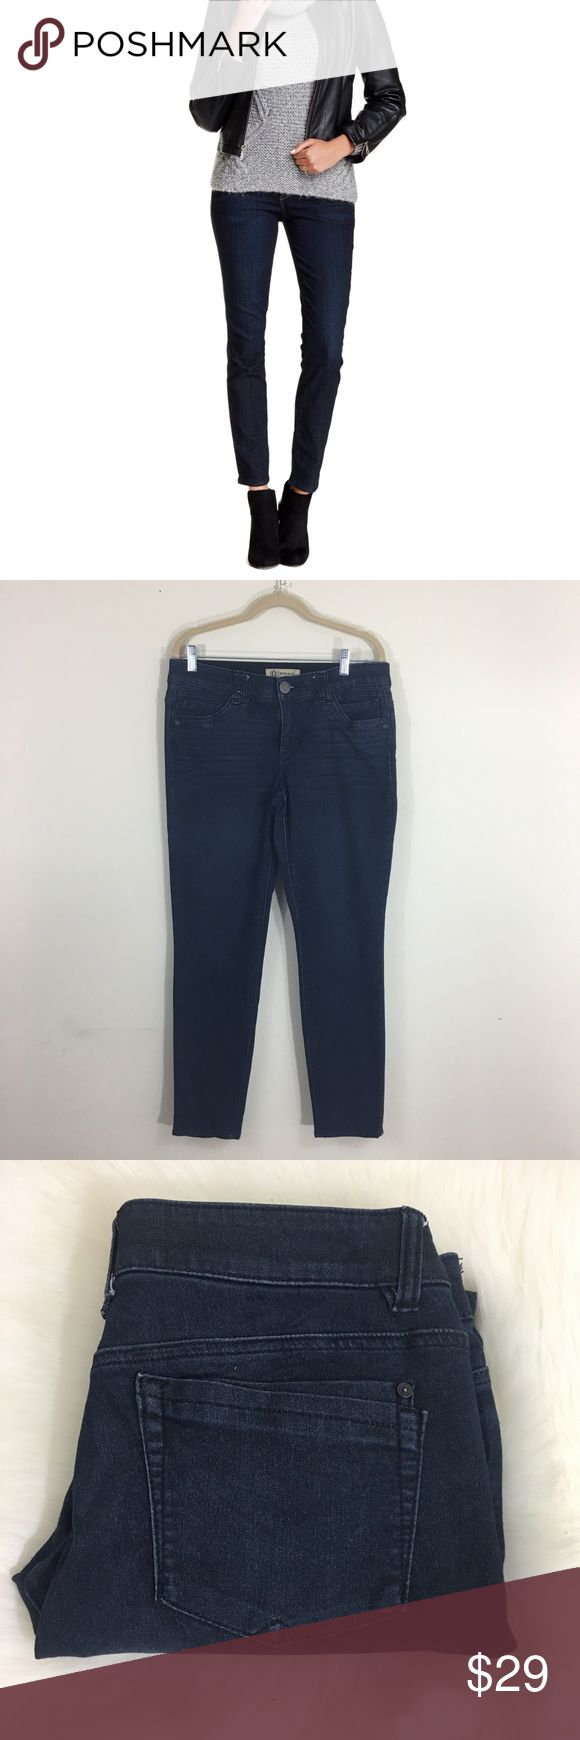 Democracy Ab Technology Jeans These jeans are in excellent used condition. The inseam is 29 inches. There are no stains or defects. Democracy Jeans Skinny